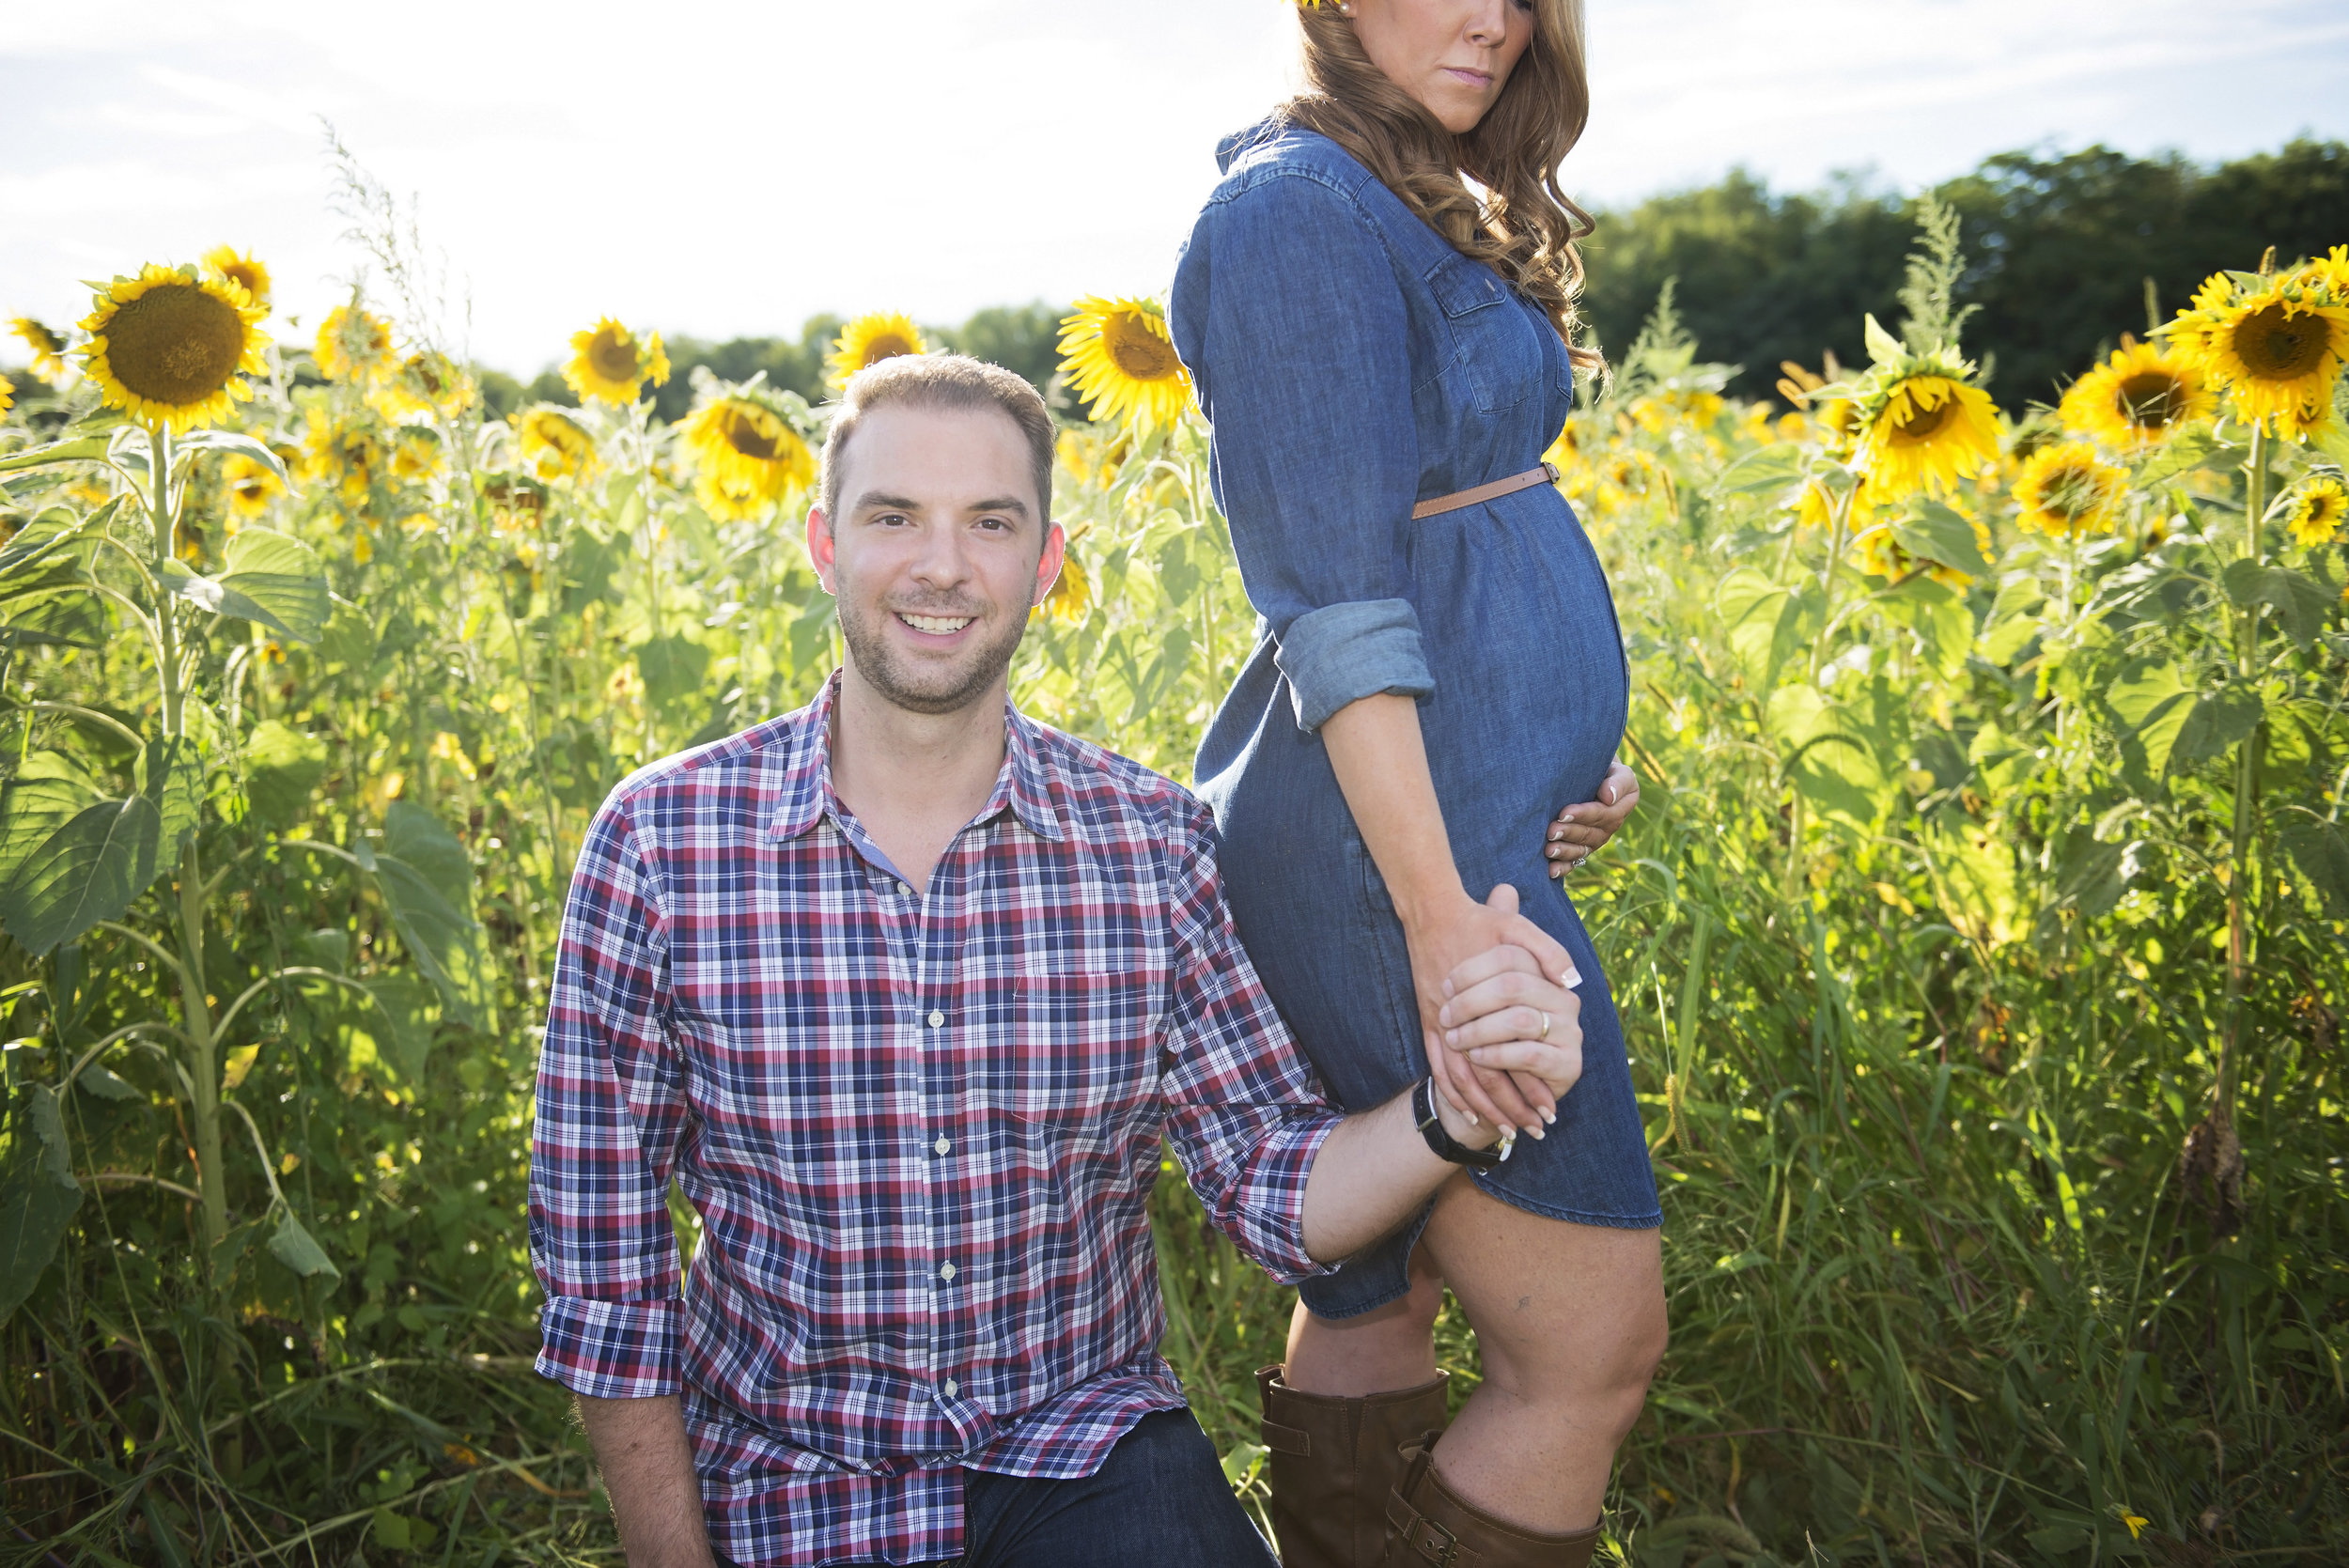 Heather's Maternity Session-0010.jpg